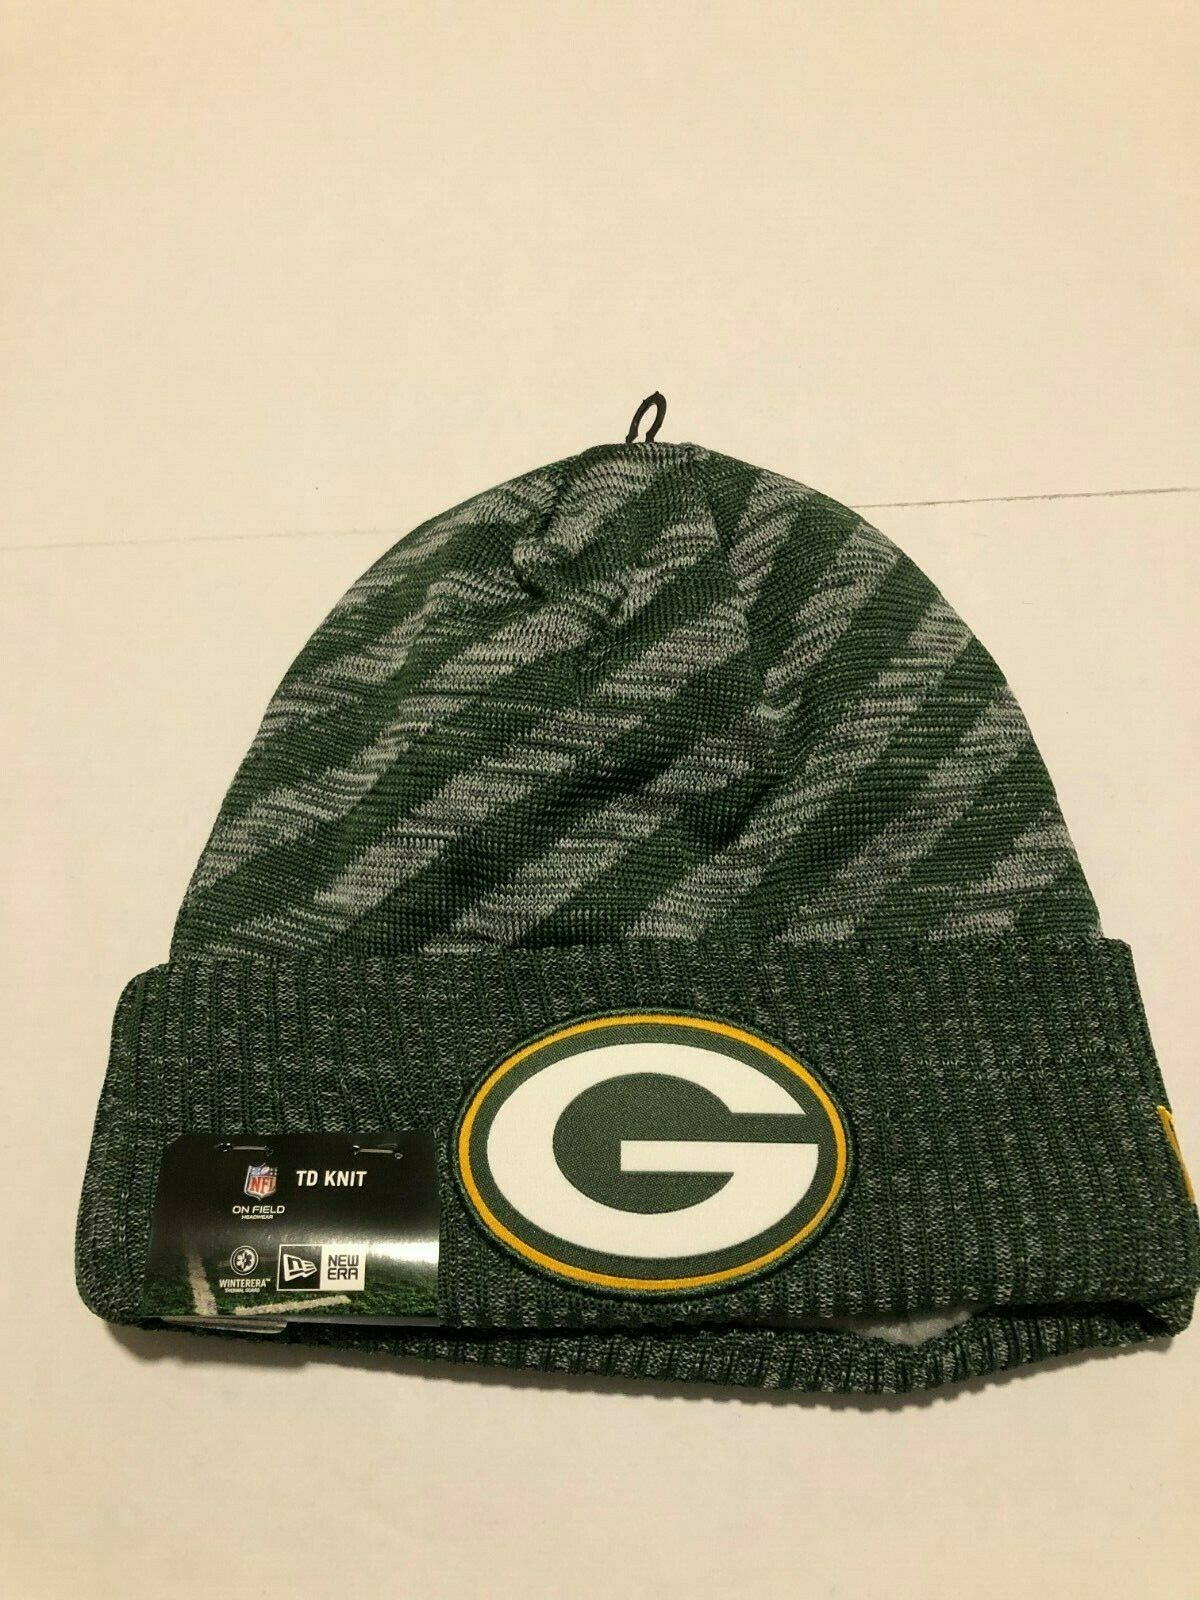 39dda941a30 2018 Green Bay Packers Era TD Knit Hat on Field Sideline Beanie Stocking Cap  for sale online